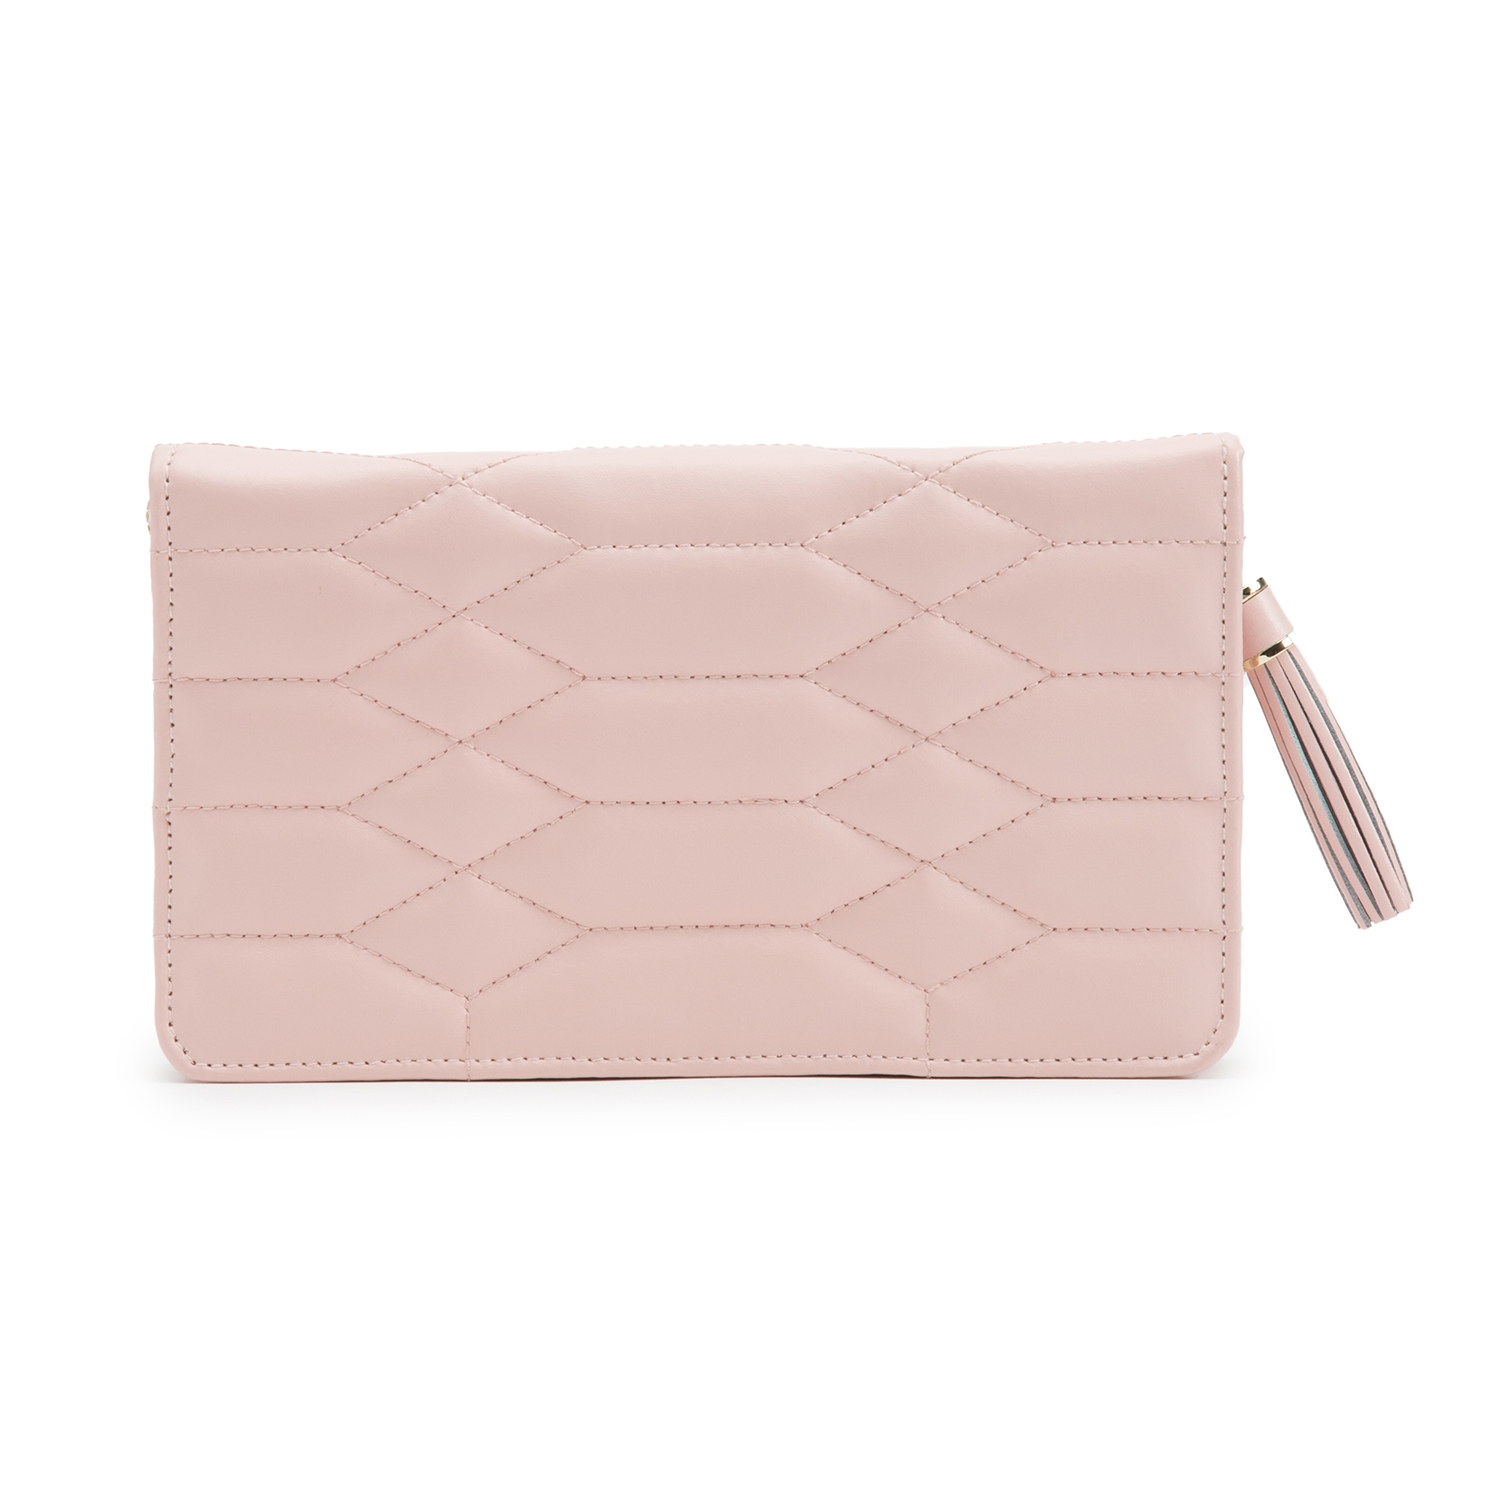 WOLF THE ALKEMISTRY PINK QUILTED LEATHER JEWELLERY POUCH